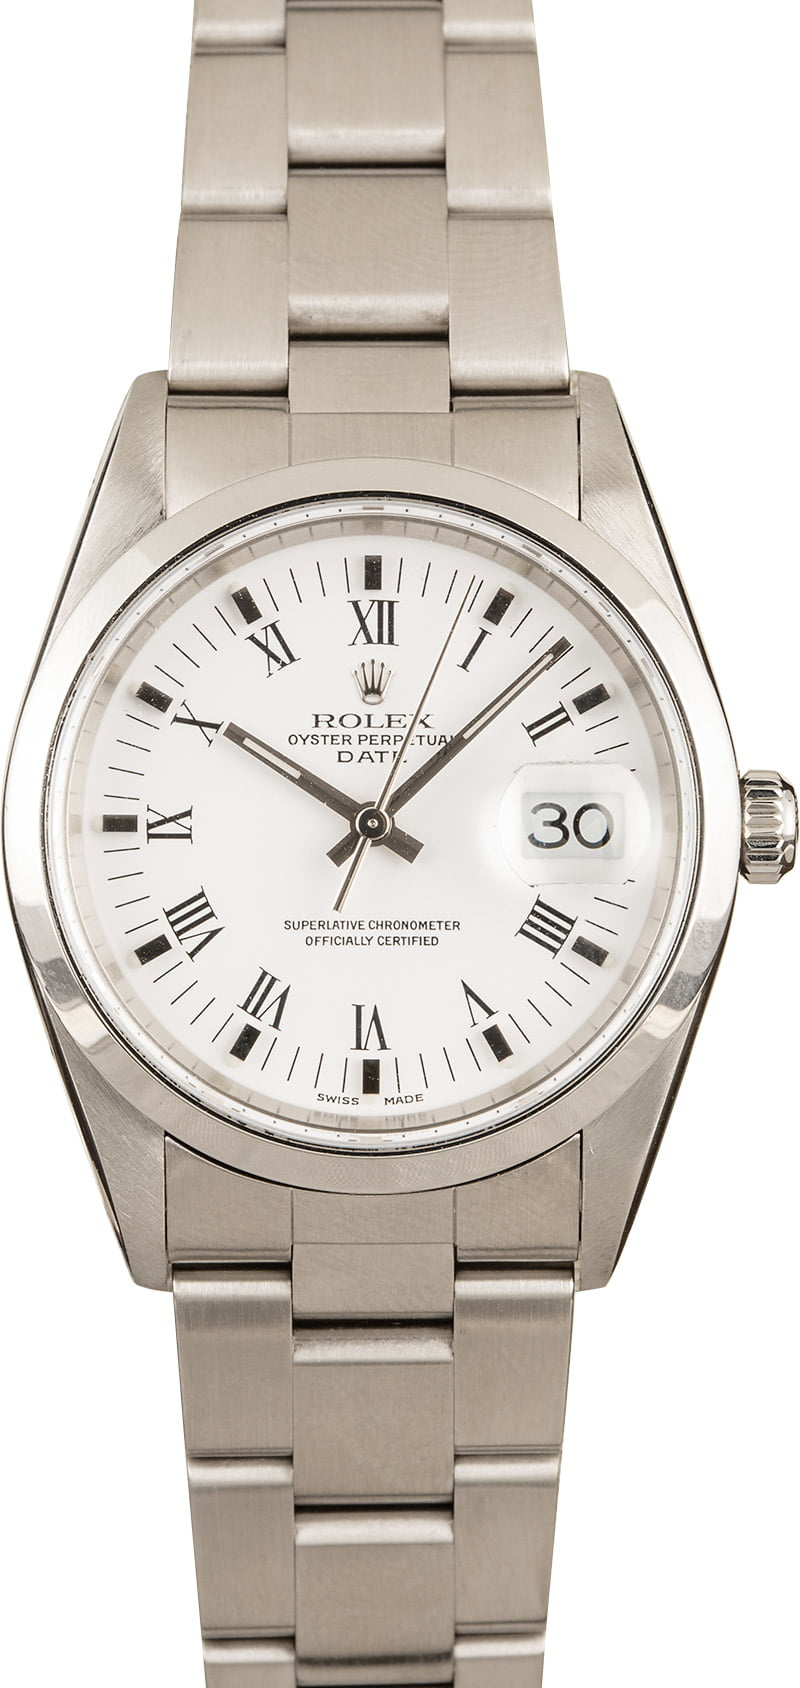 Rolex Datejust 34 Different Sizing Options Date